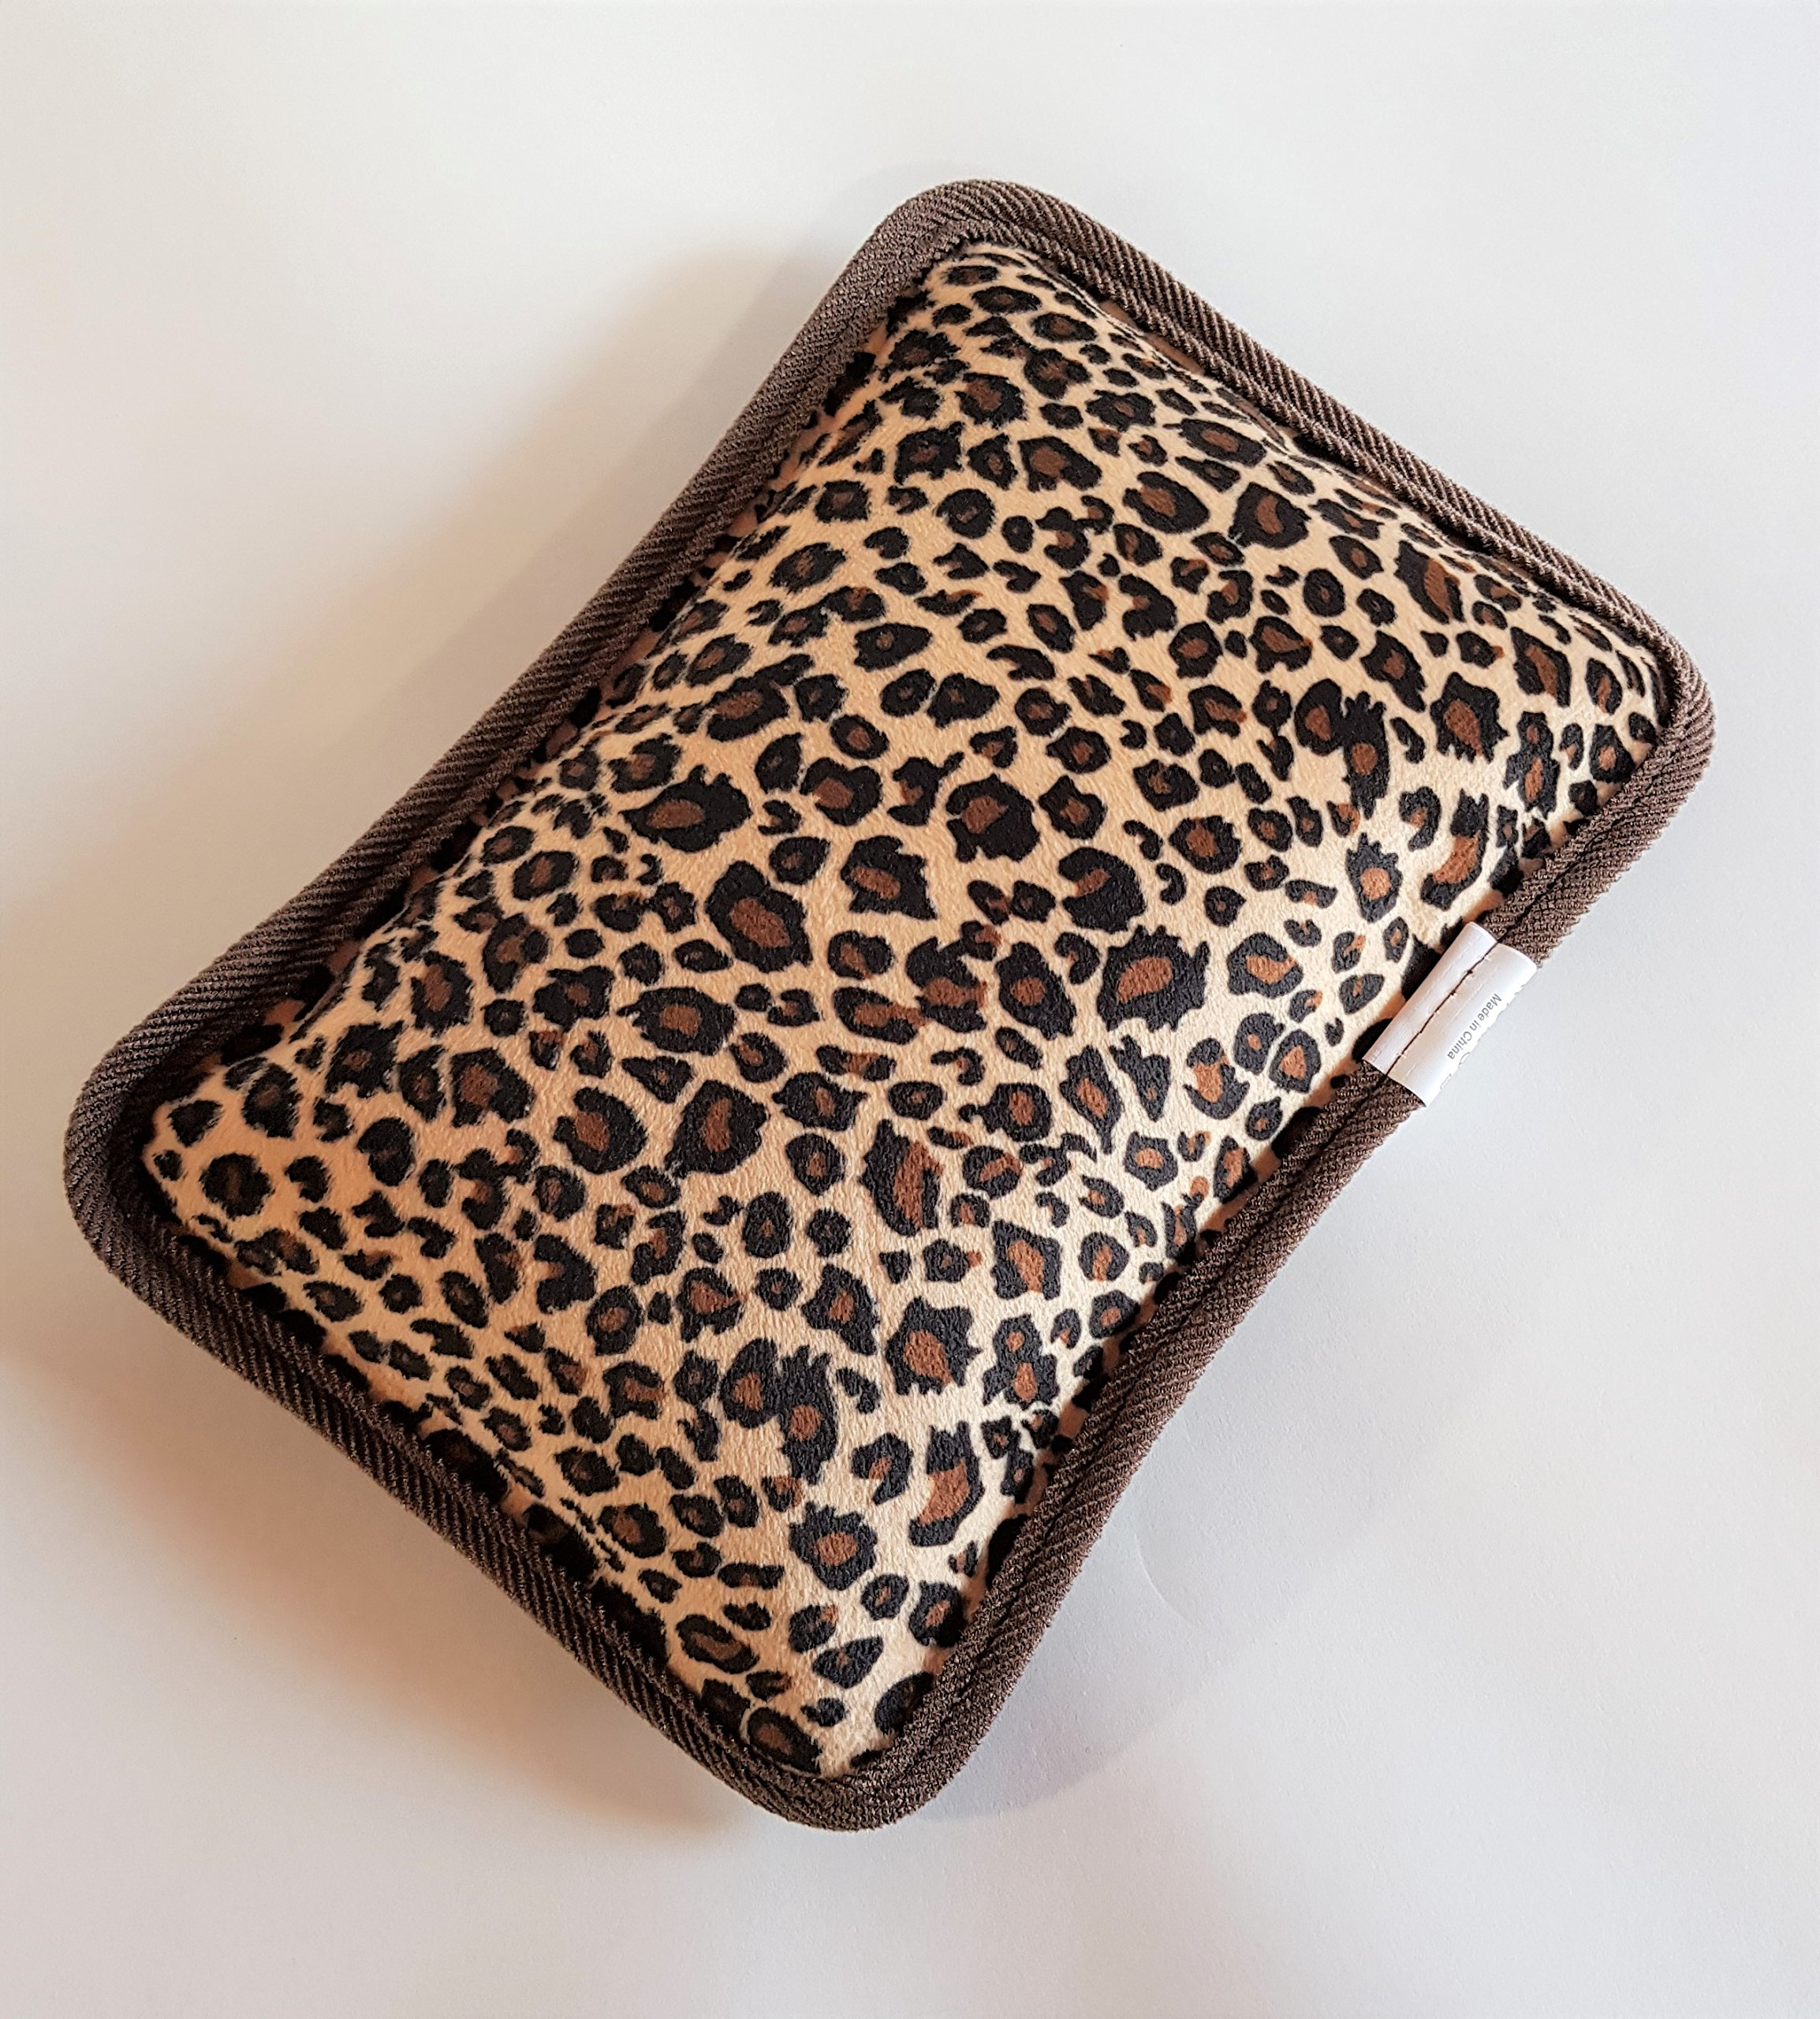 Rechargeable Portable Heat Pad/Pack (Leopard)